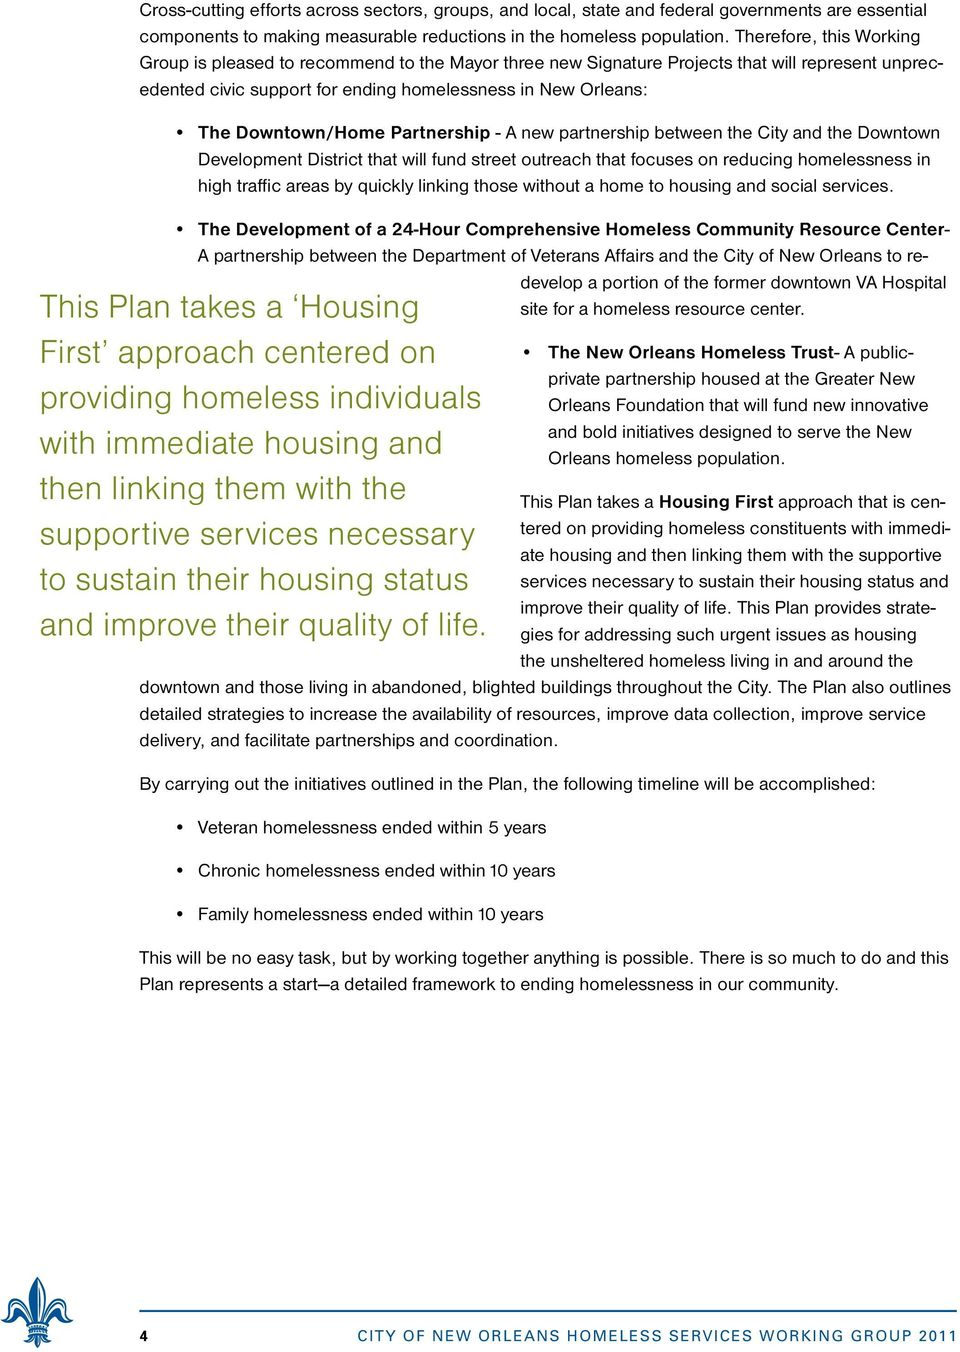 Downtown/Home Partnership - A new partnership between the City and the Downtown Development District that will fund street outreach that focuses on reducing homelessness in high traffic areas by